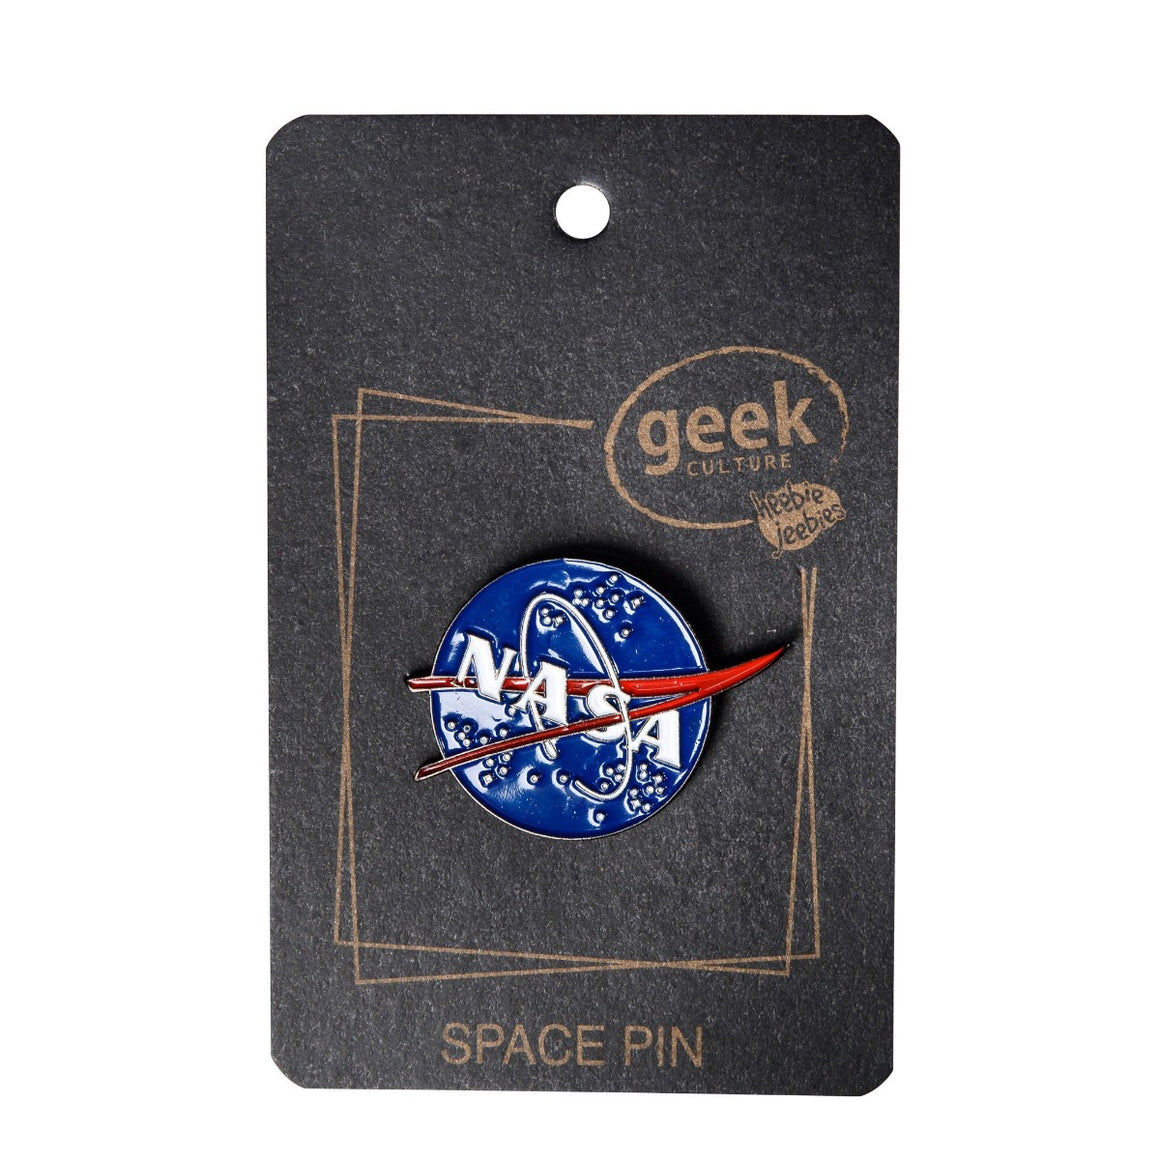 Image featuring a black piece of card with the text Geek Culture: Space Pin on the front, with an enamel pin in the middle which features the blue, white and red logo of NASA